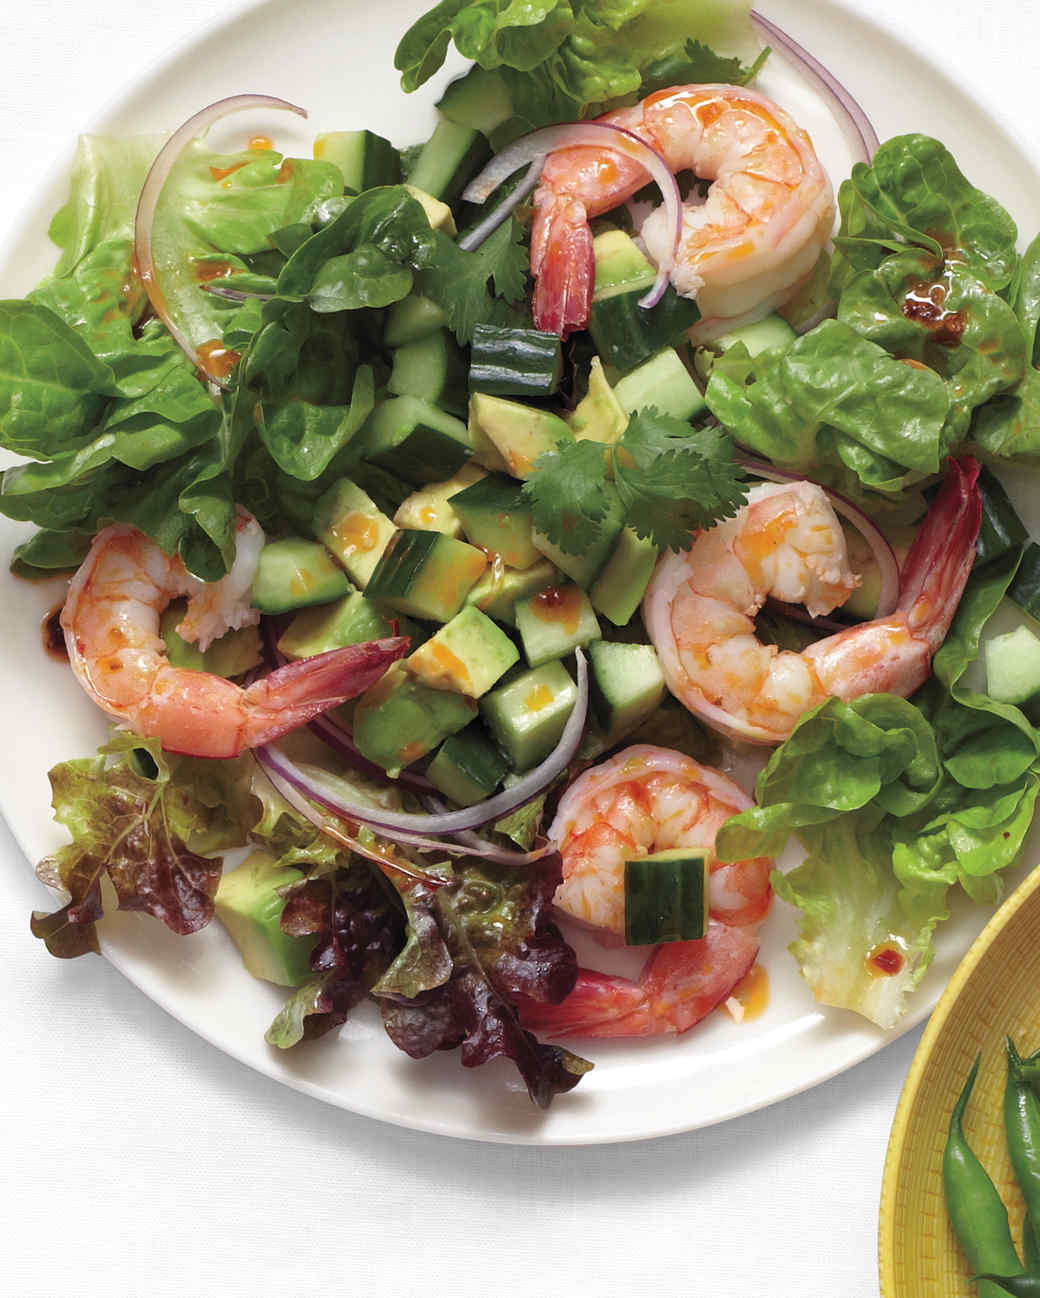 Shrimp Salad Recipes That Will Amp Up Your Greens | Martha Stewart